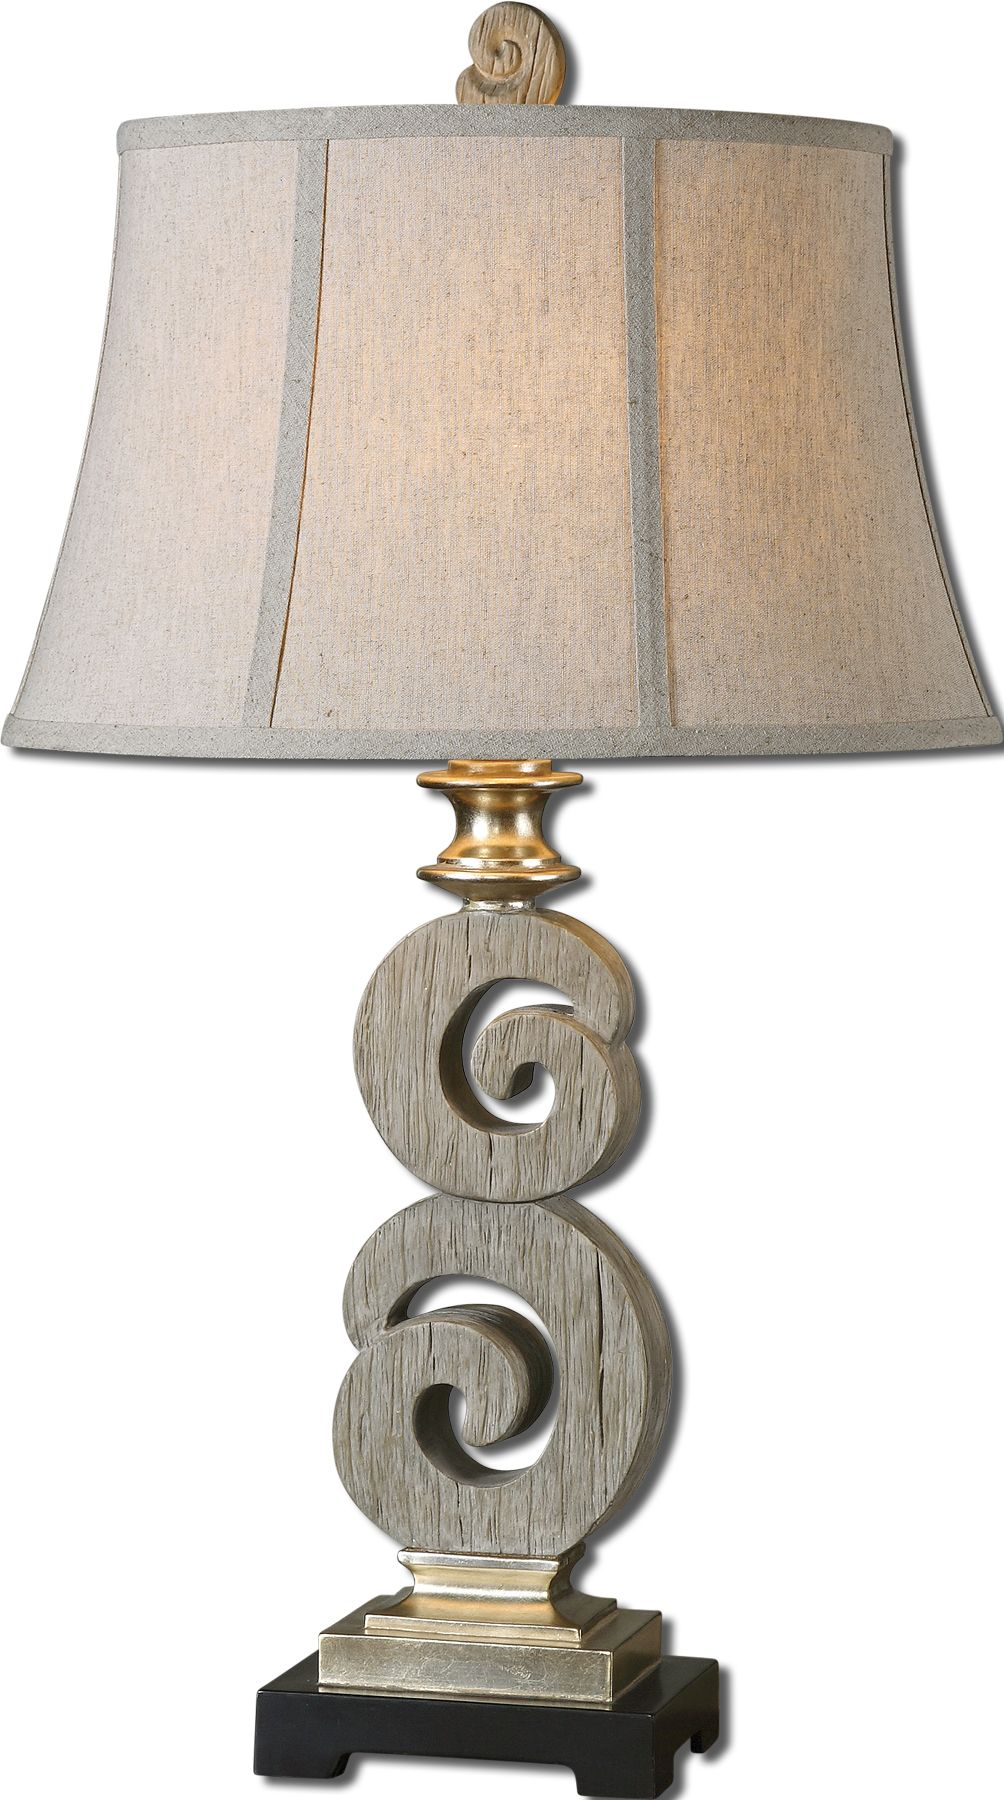 Uttermost 27439 Delshire Wood Table Lamp